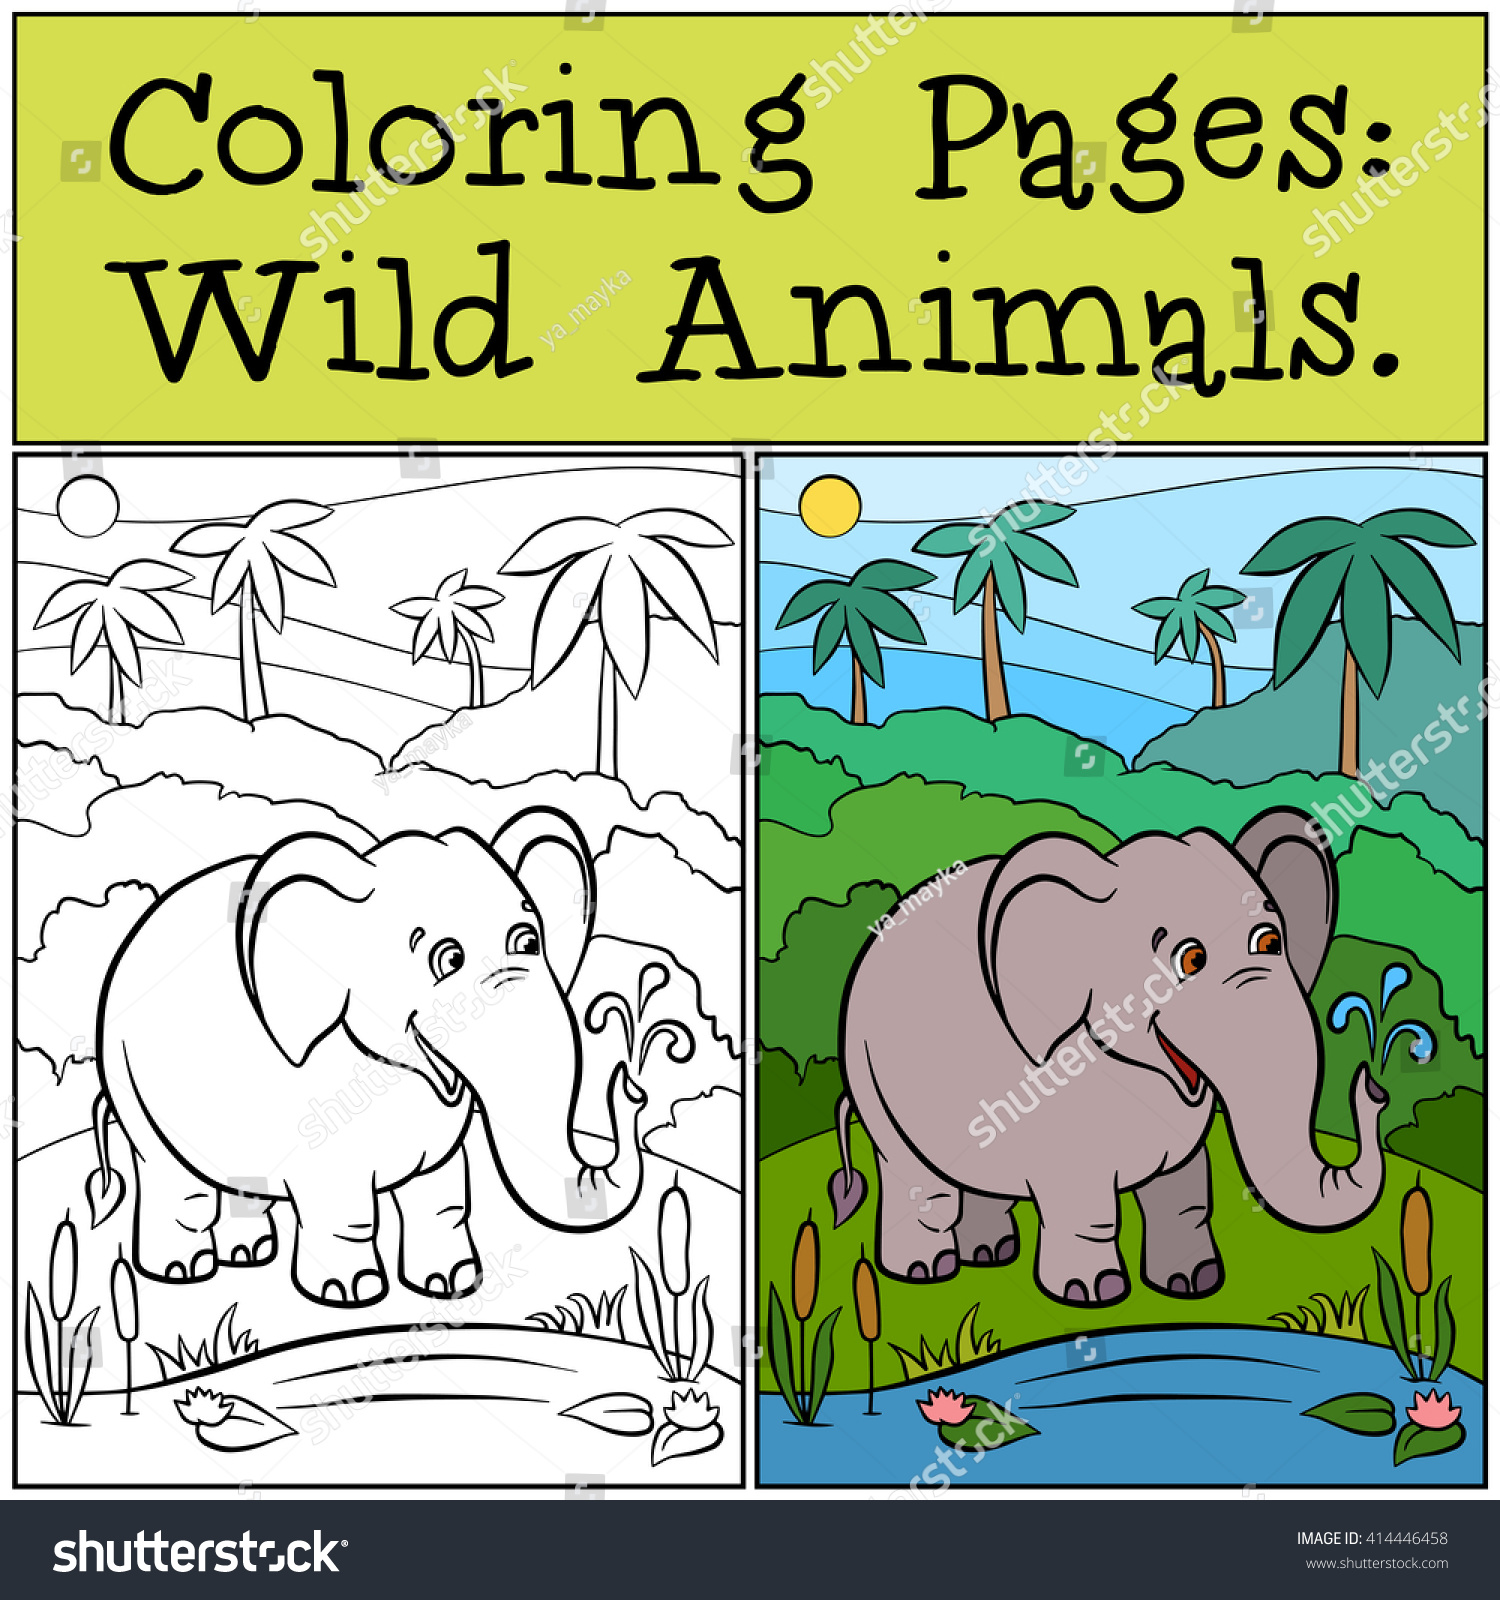 Coloring Pages Wild Animals Cute Elephant Stock Vector 414446458 ...